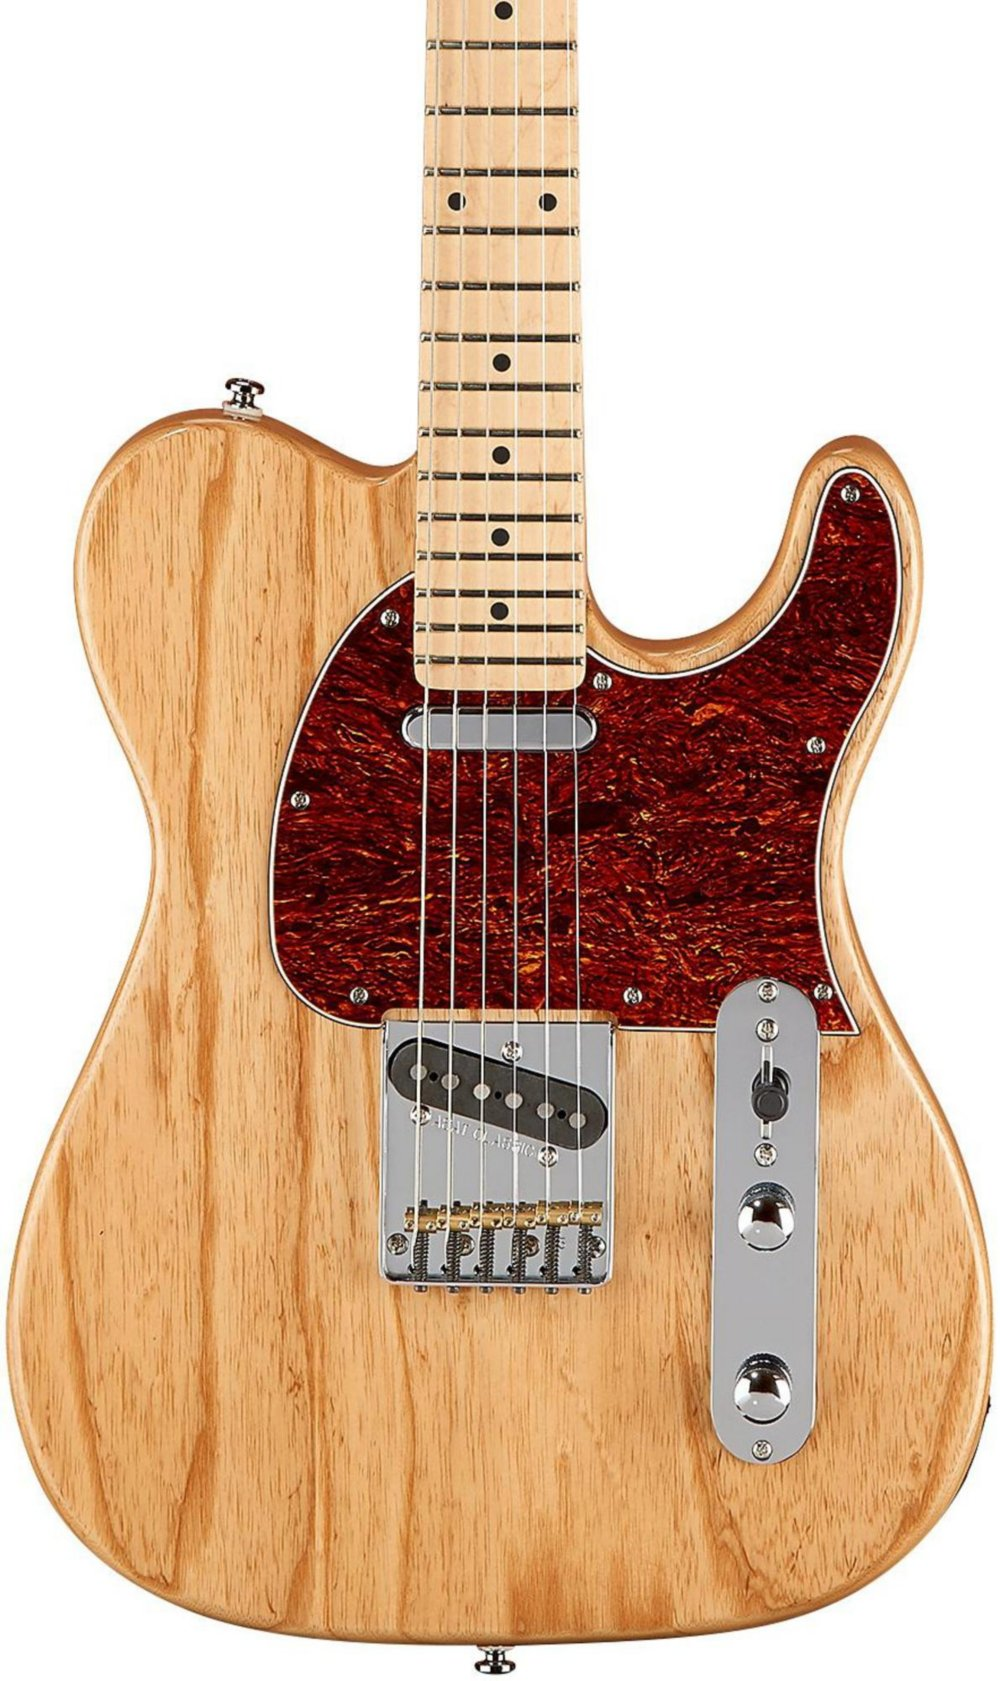 Cheap G&L Limited Edition Tribute ASAT Classic Ash Body Electric Guitar Gloss Natural Black Friday & Cyber Monday 2019